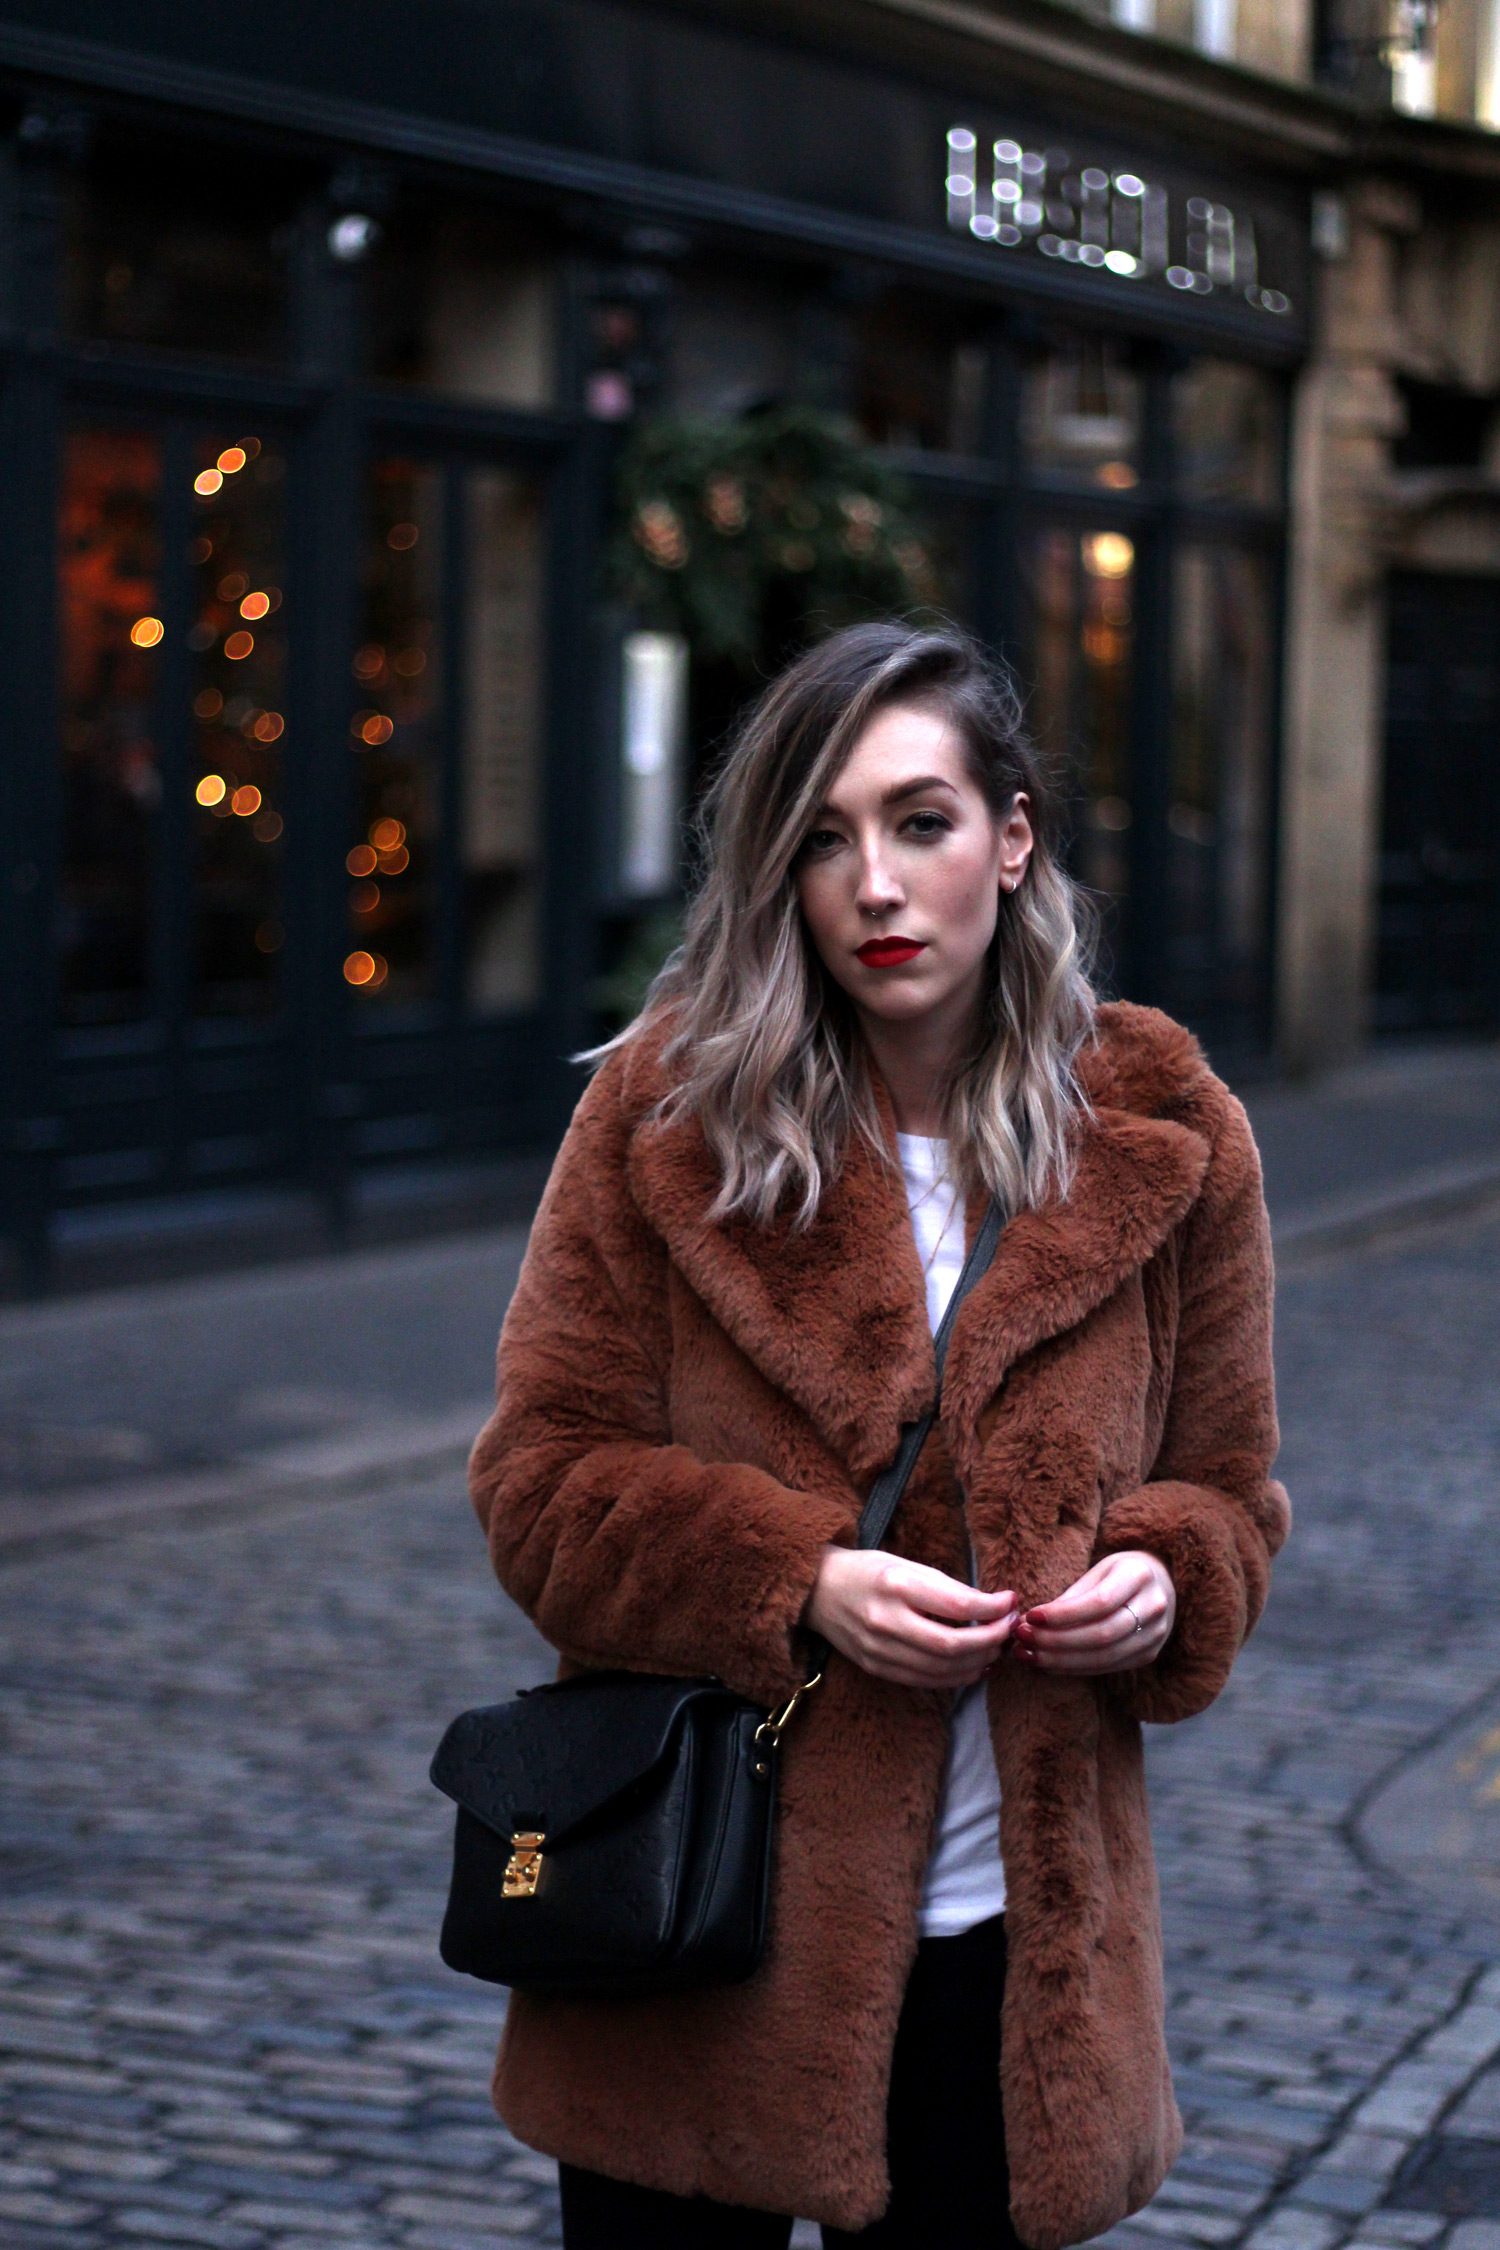 zara-toffee-faux-fur-textured-collar-coat-vintage-brown-fur-coat.-12